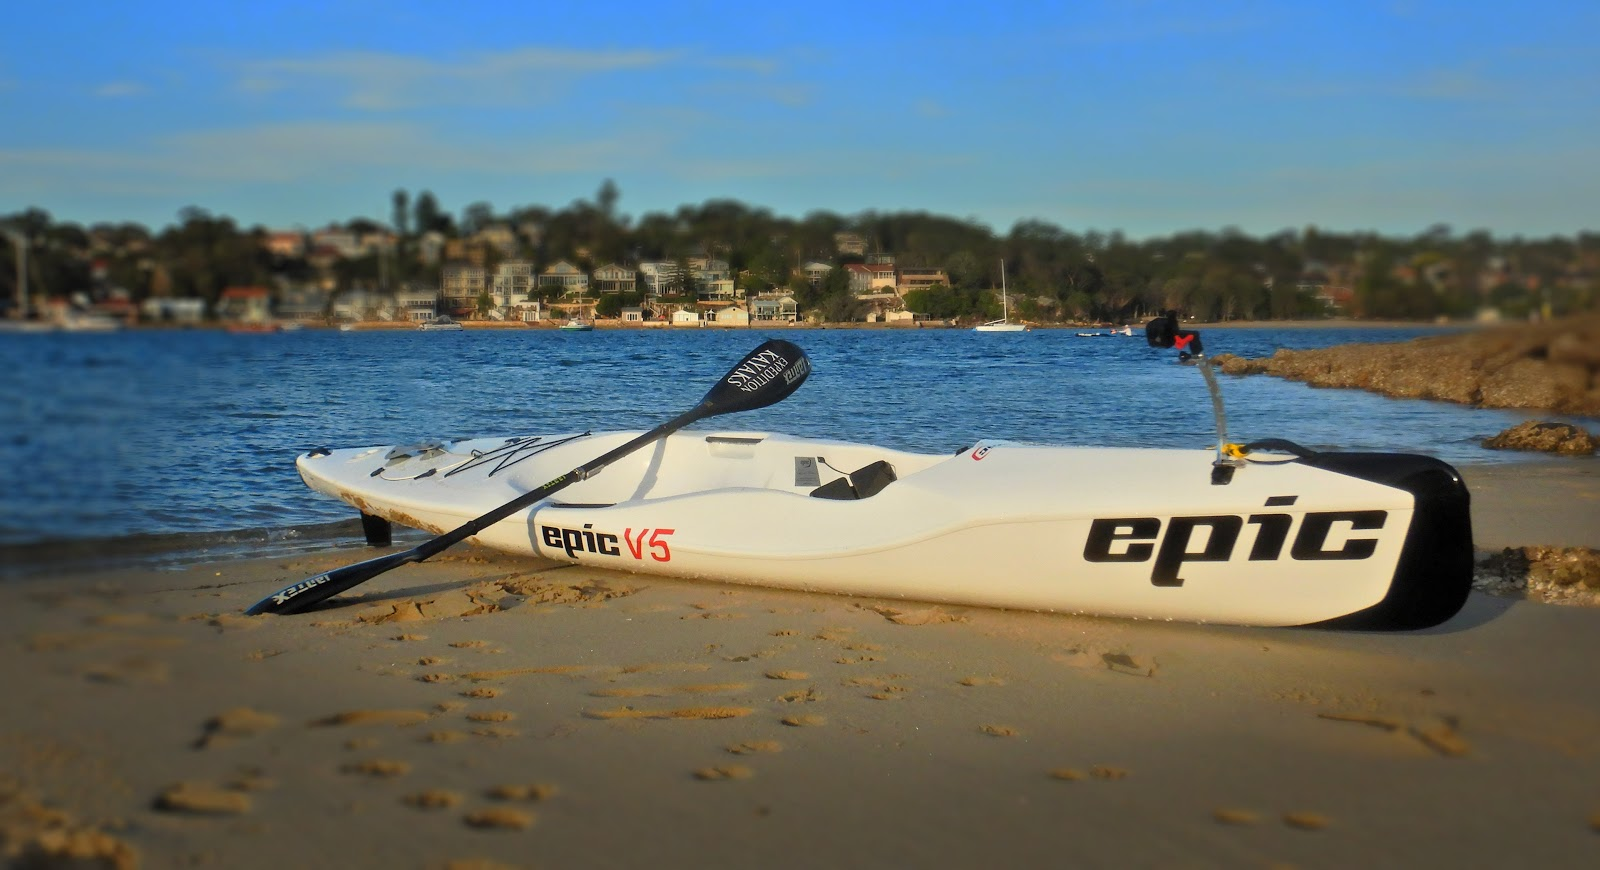 Expedition Kayaks: The Epic V5 - a ski for you & your mates